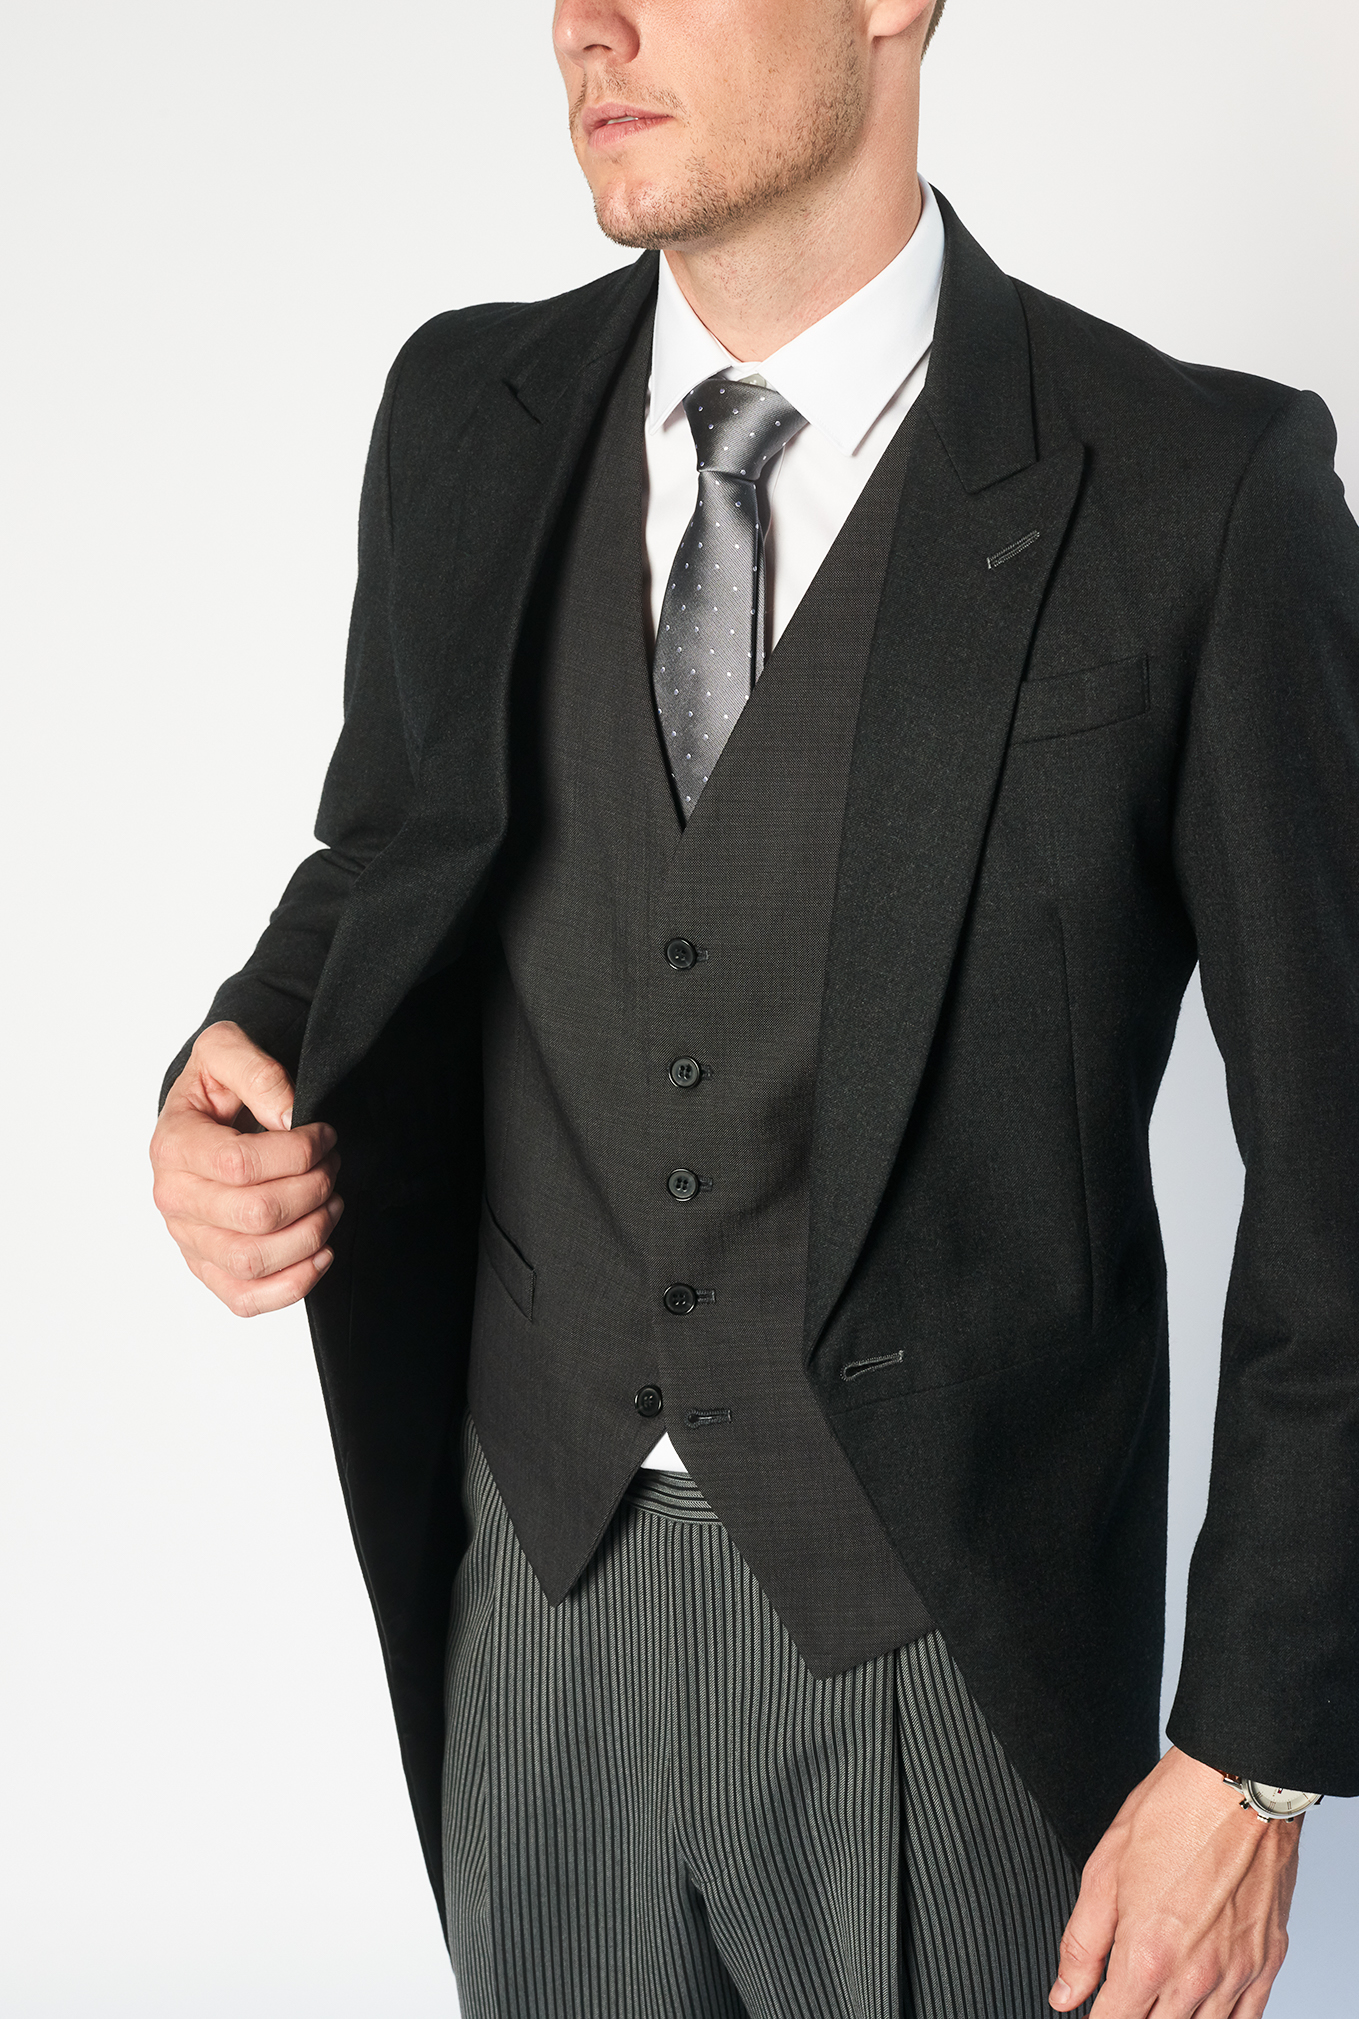 The Morning Suit close up of black jacket